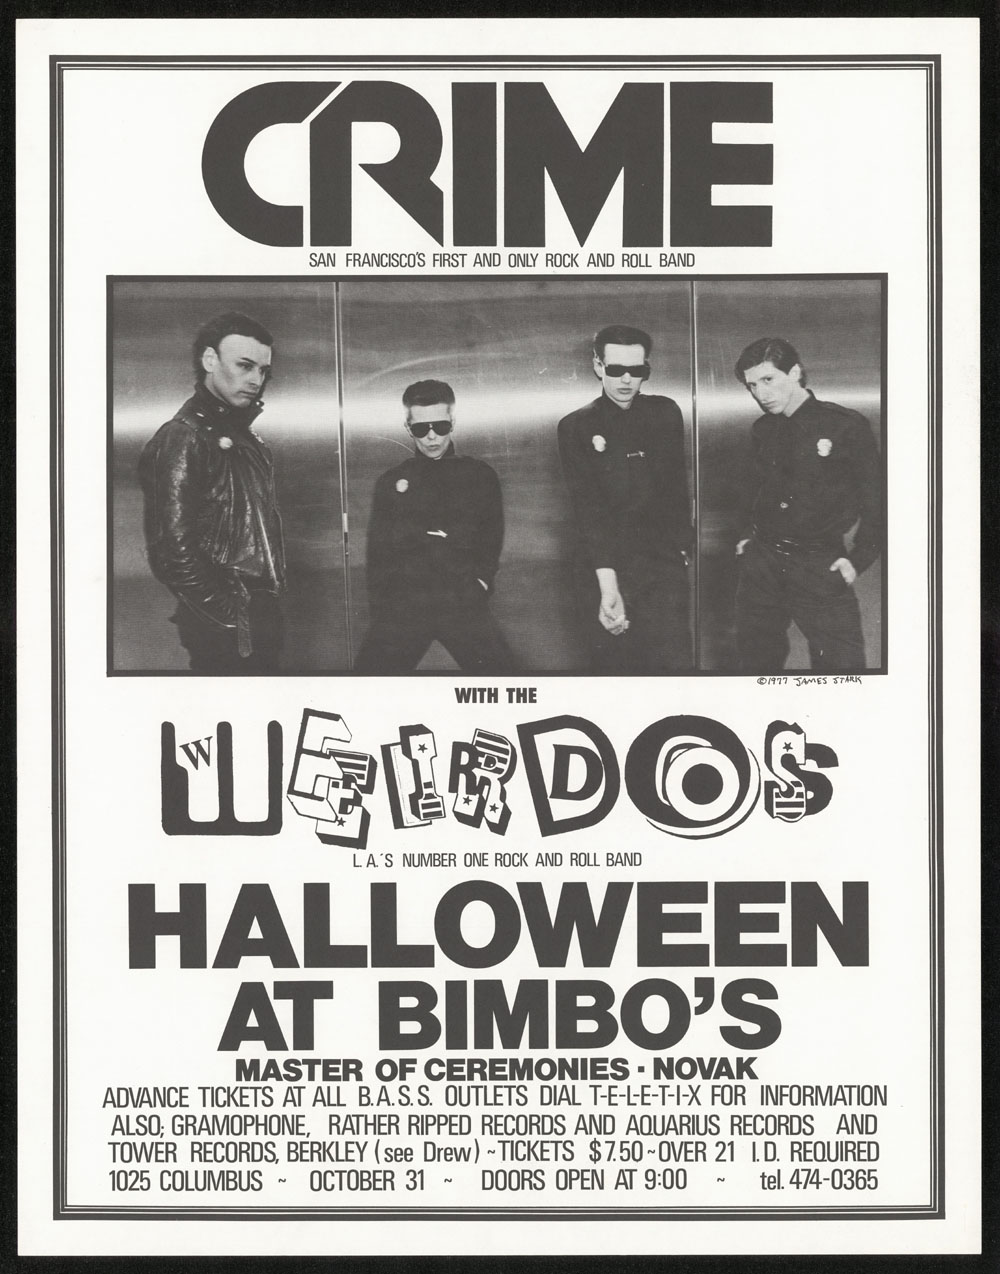 CRIME w/ Weirdos at Bimbo's POSTER